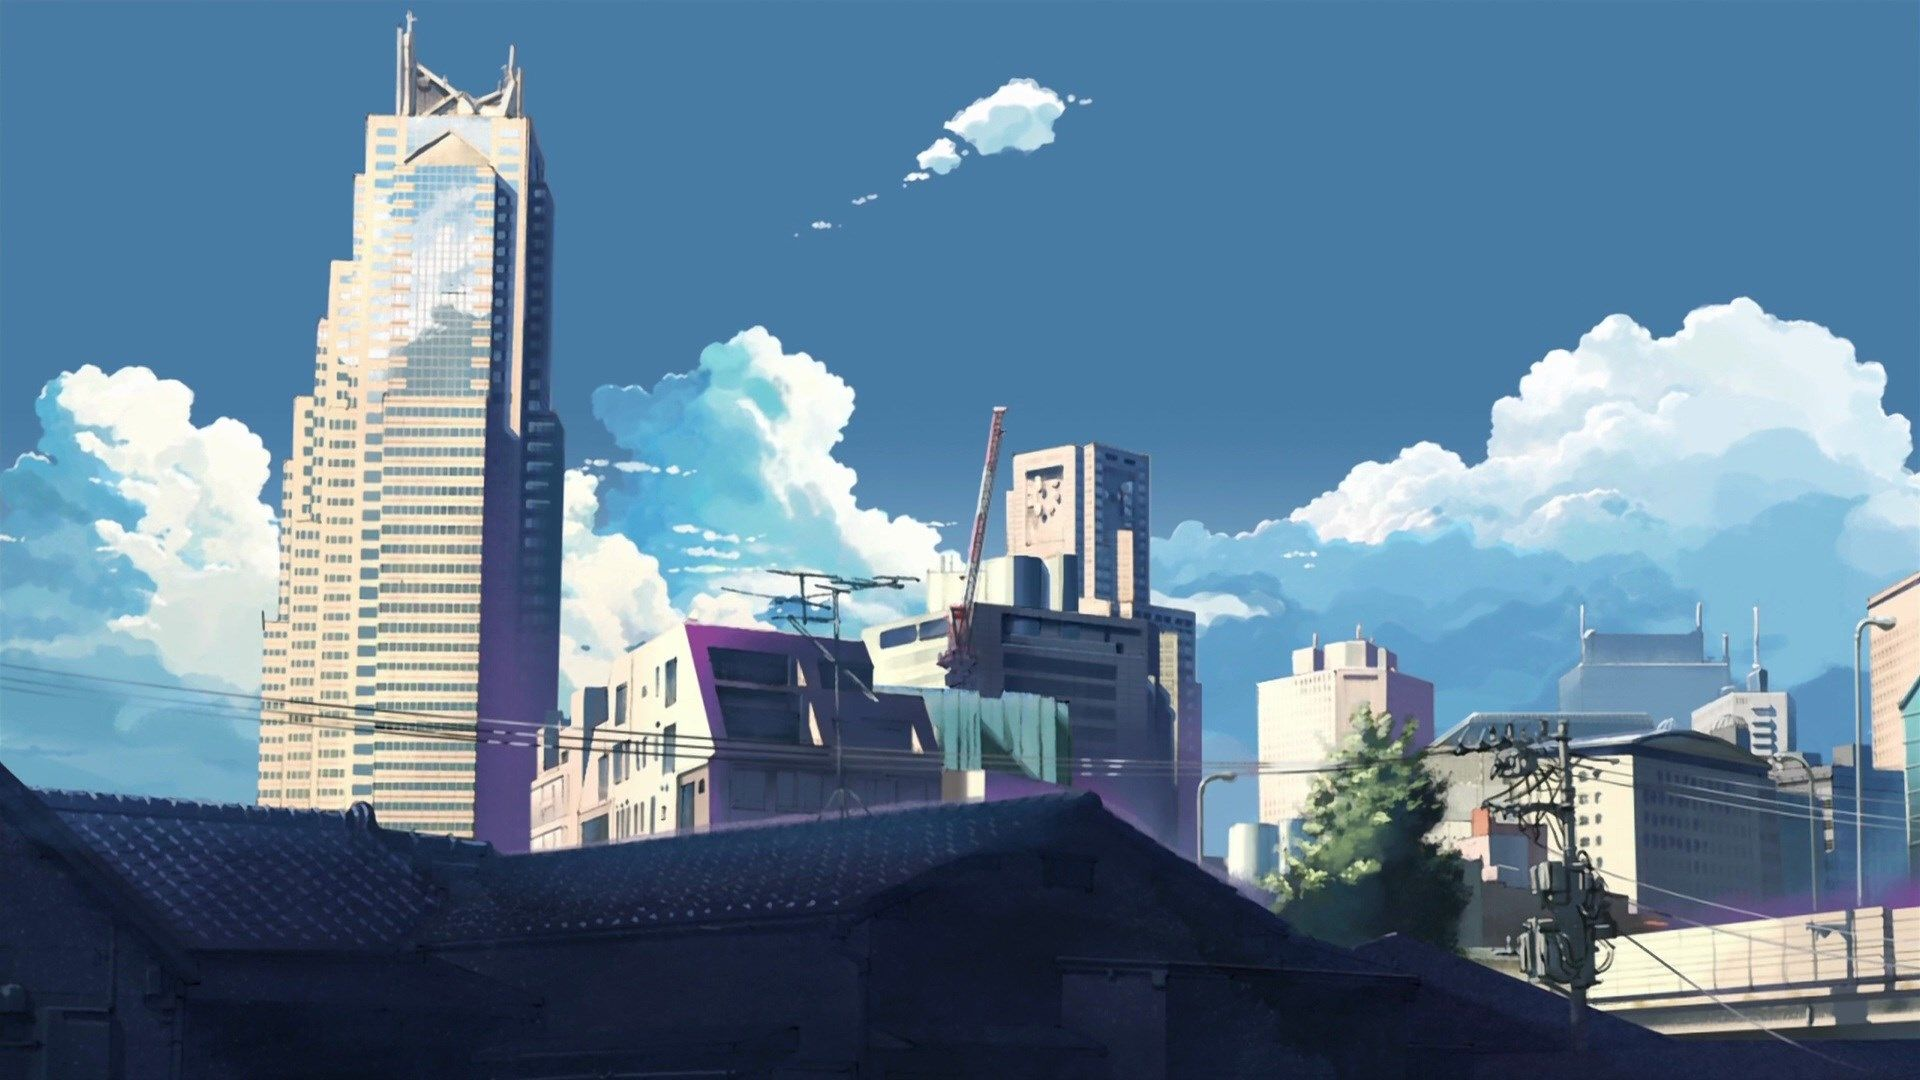 1920x1080 Px 5 Centimeters Per Second Wallpaper Full Hd